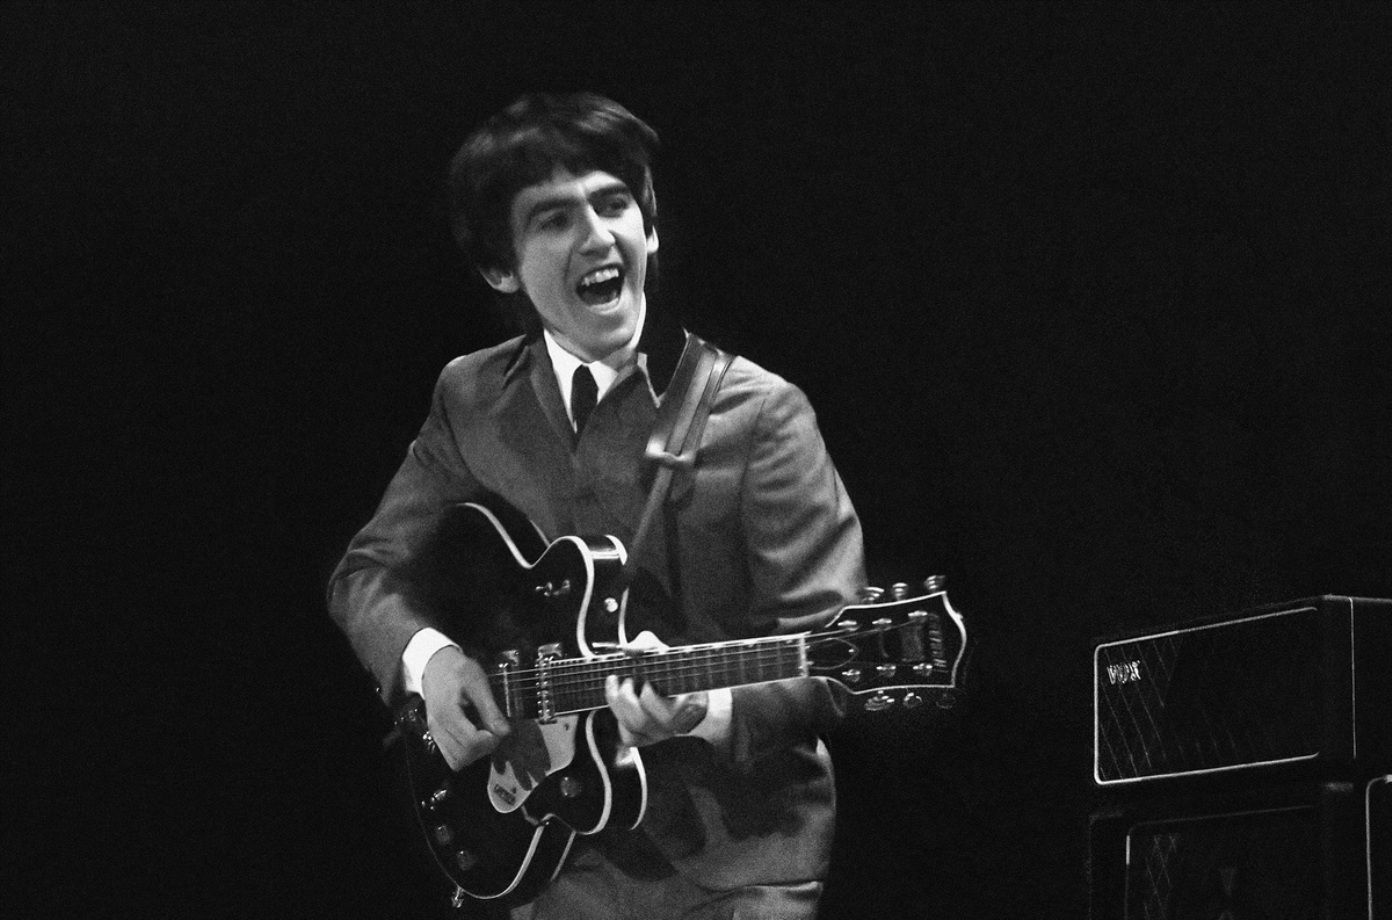 George Harrison during the Beatles first U.S. concert at the Washington Coliseum, February 11, 1964.